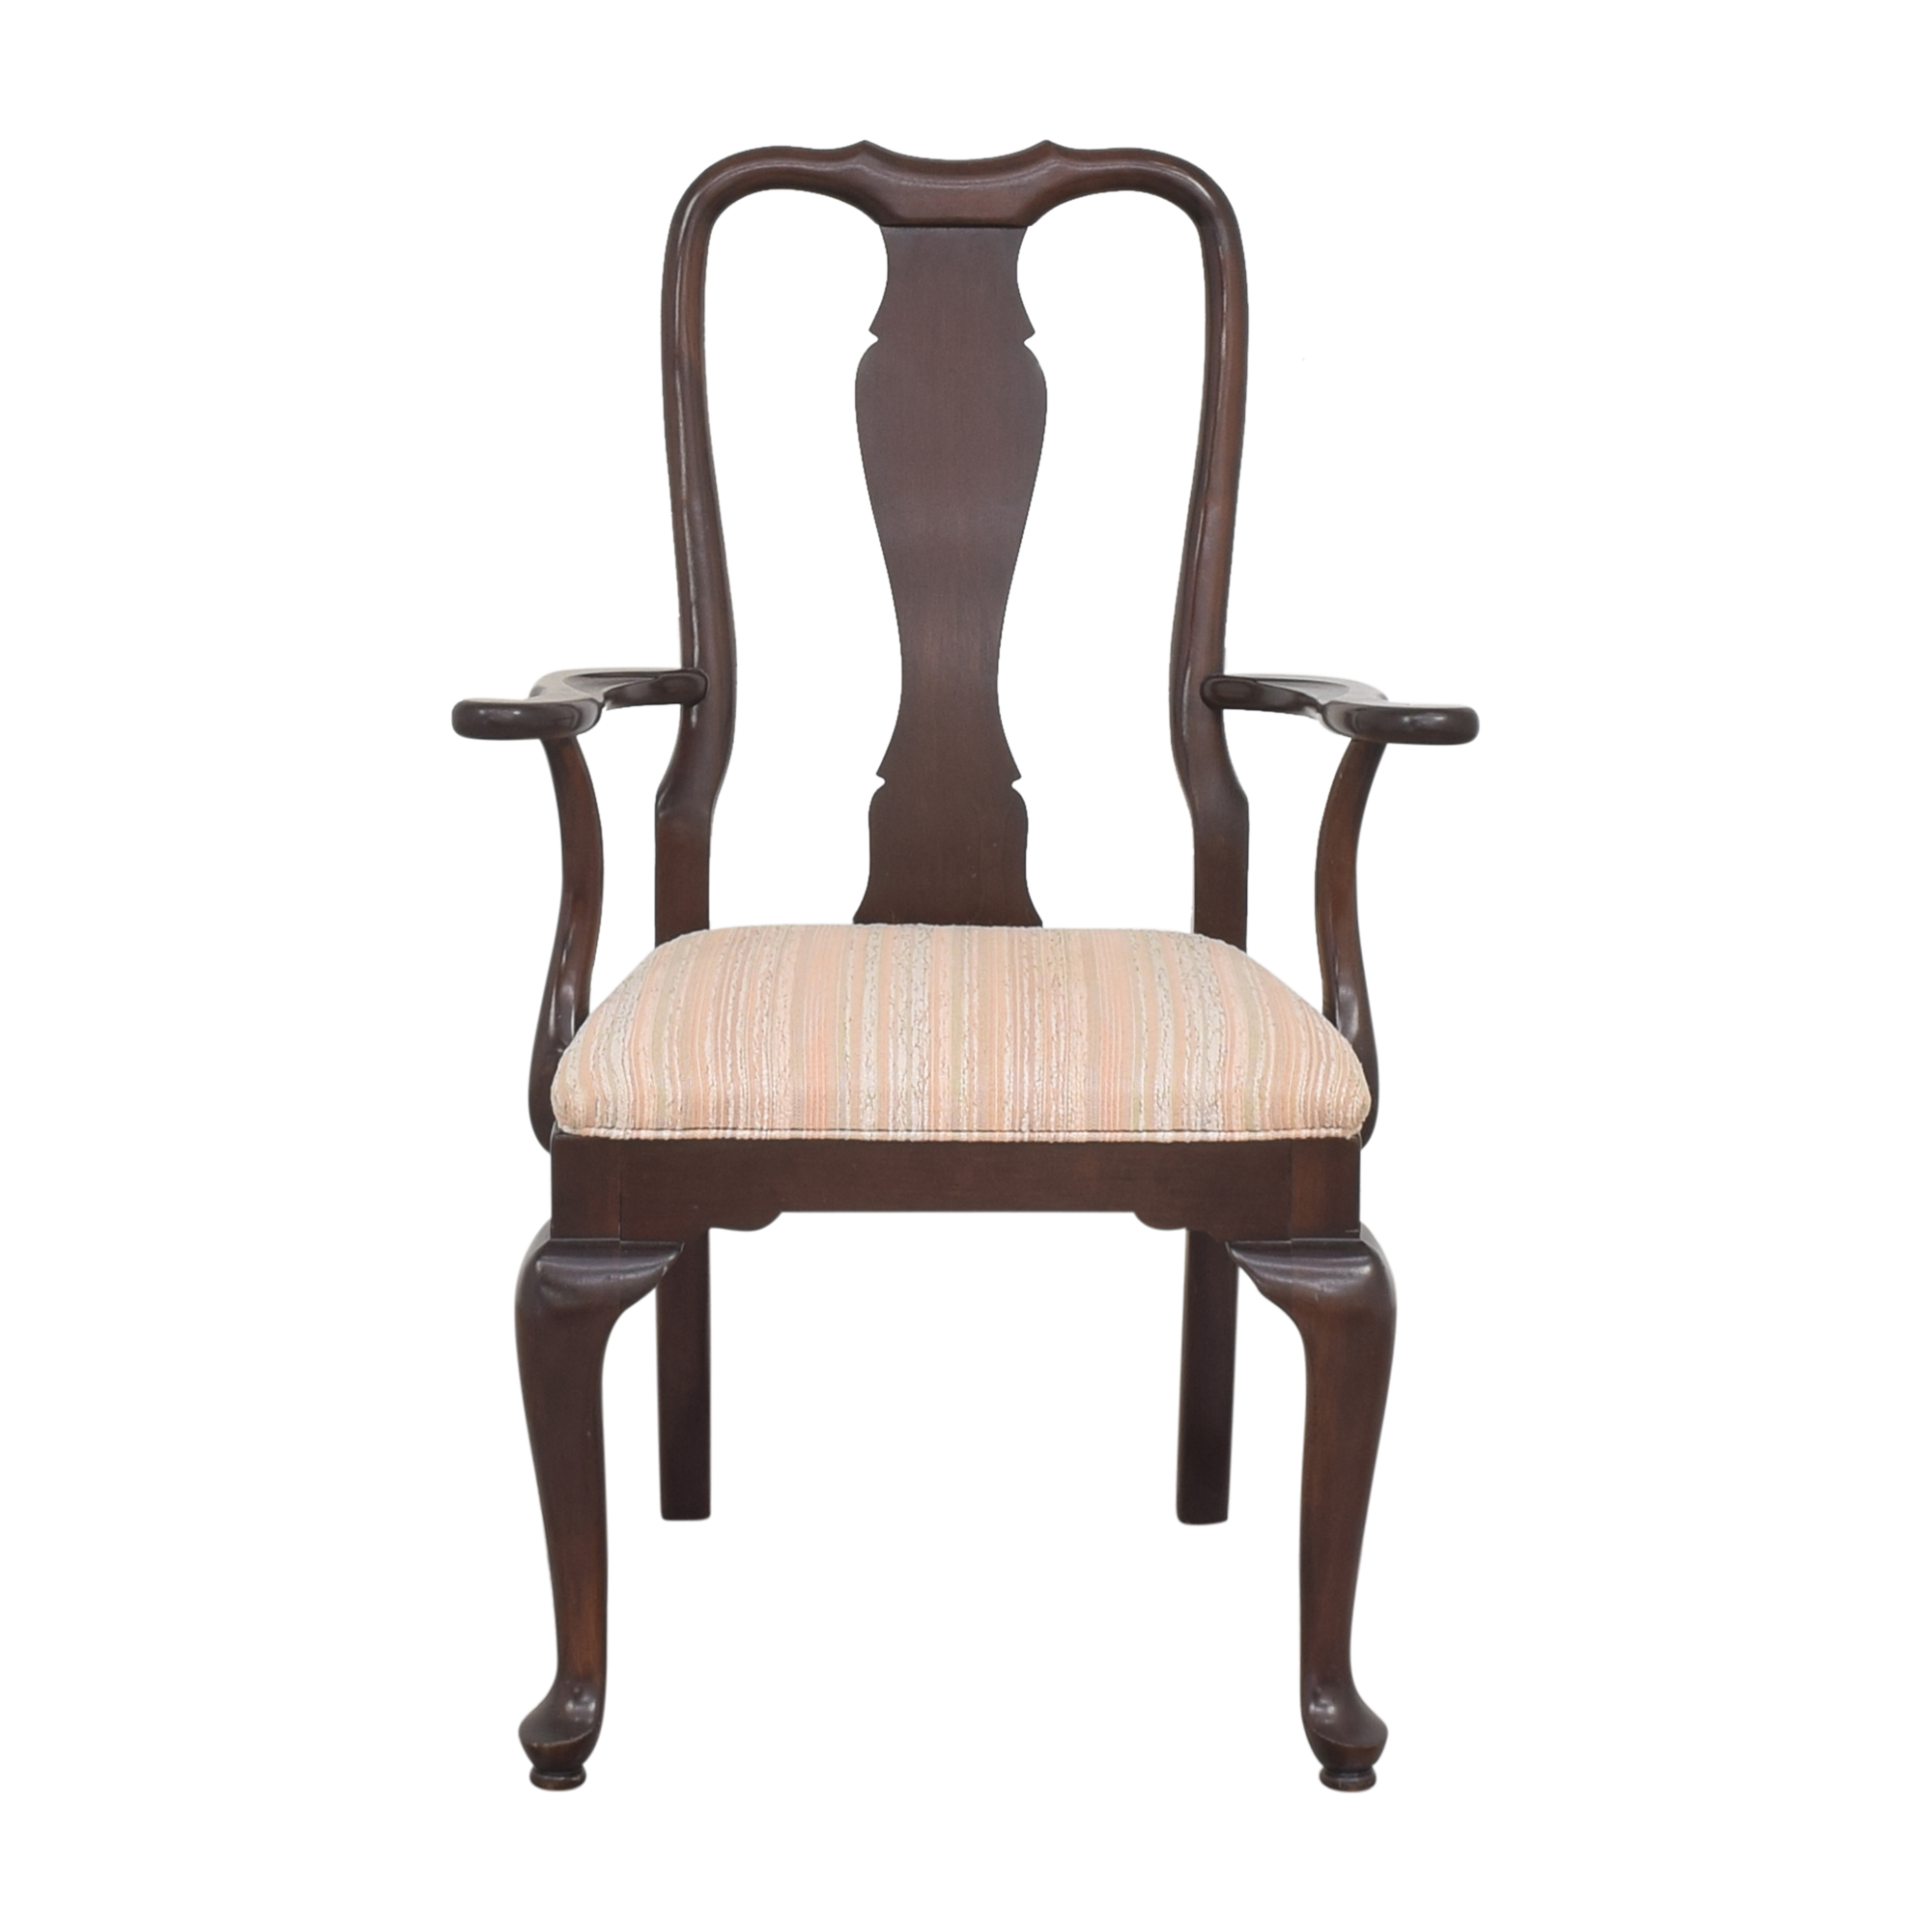 Ethan Allen Ethan Allen Georgian Court Dining Chair on sale